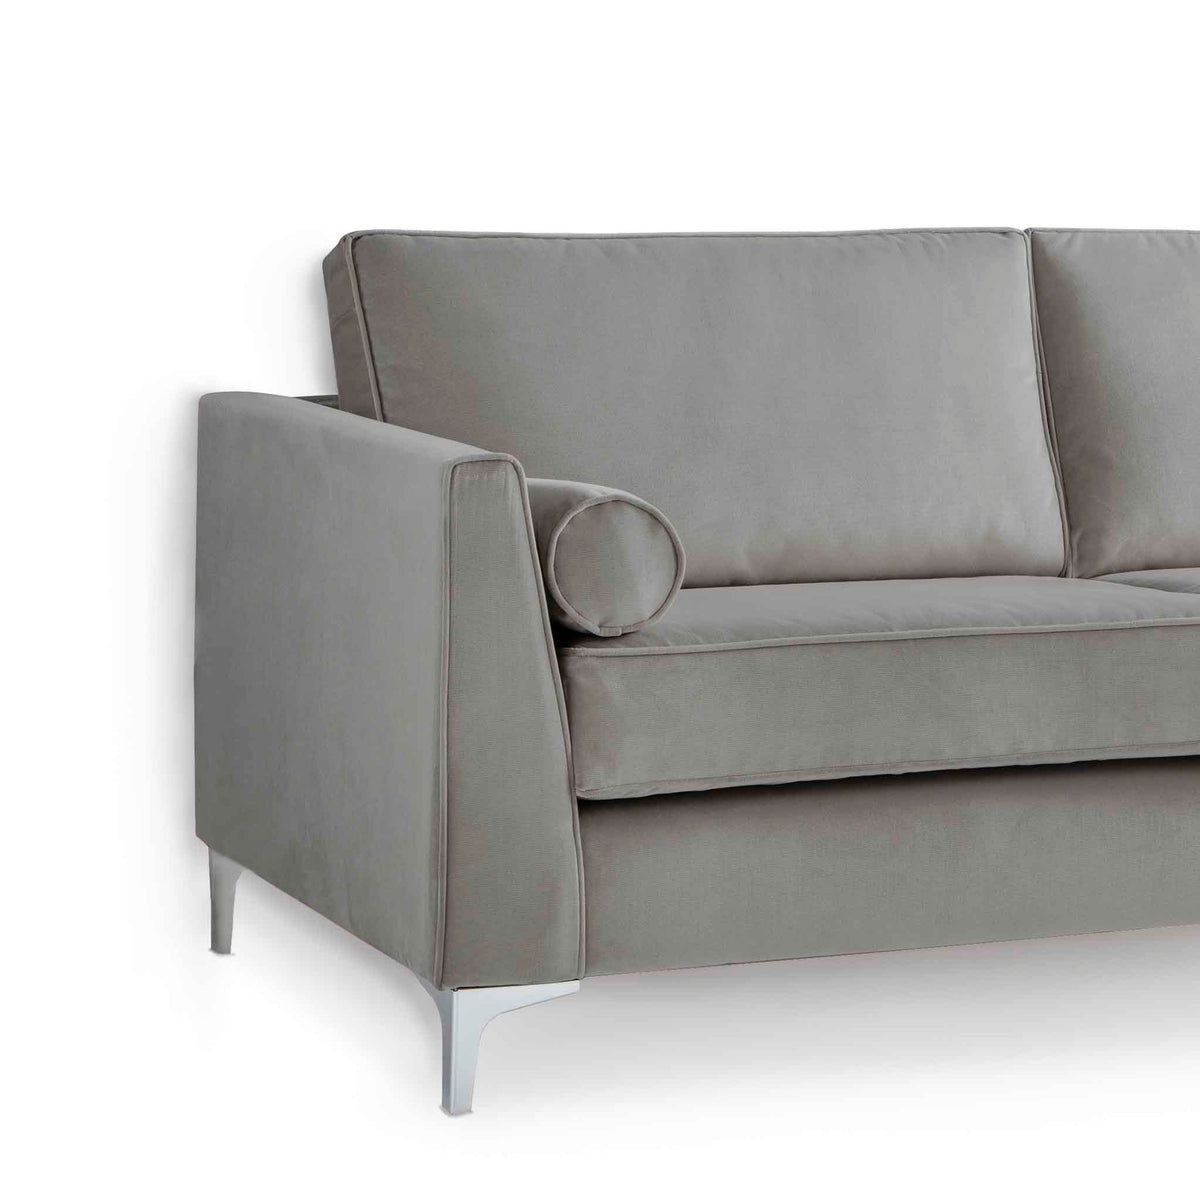 Ikon Grey 3 Seater Sofa - Close up of side of sofa